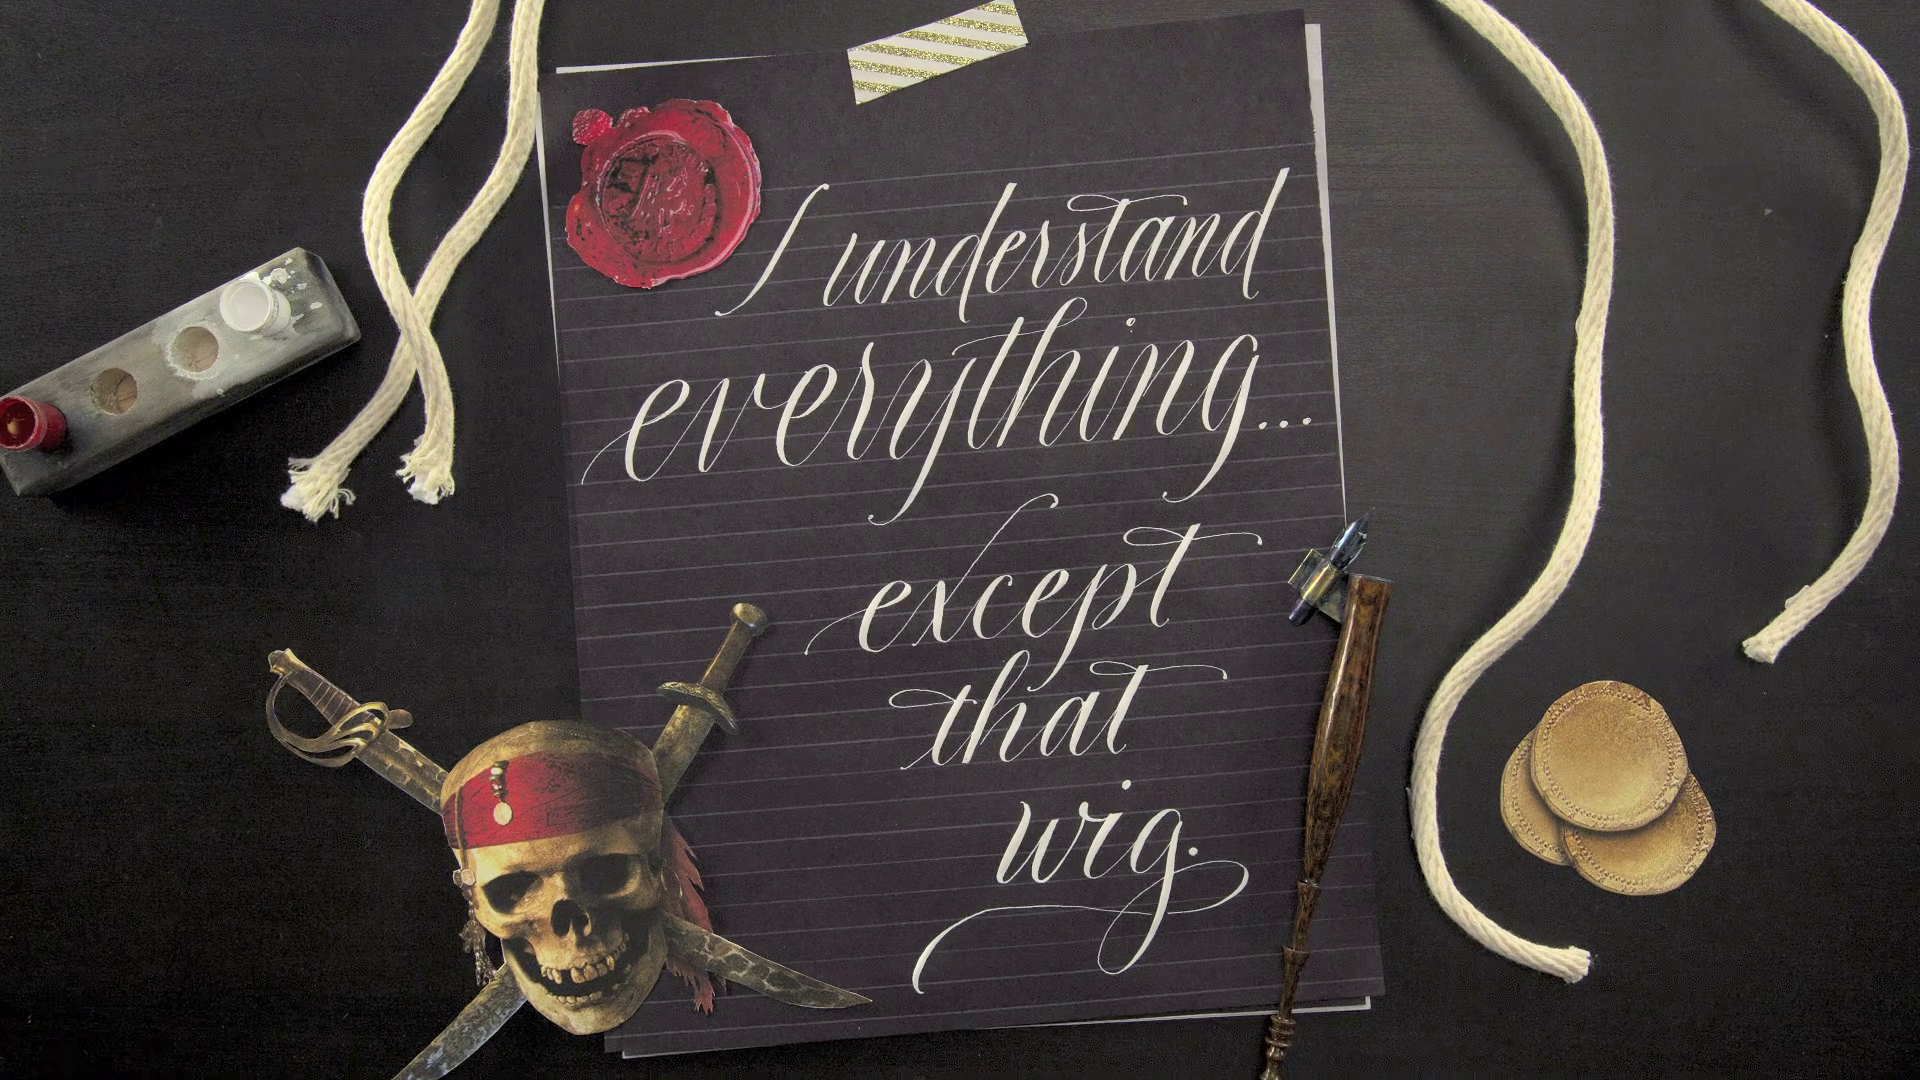 Calligraphy Artist Creates Amazing Disney Comeback Quotes Part 02 | Oh My Disney